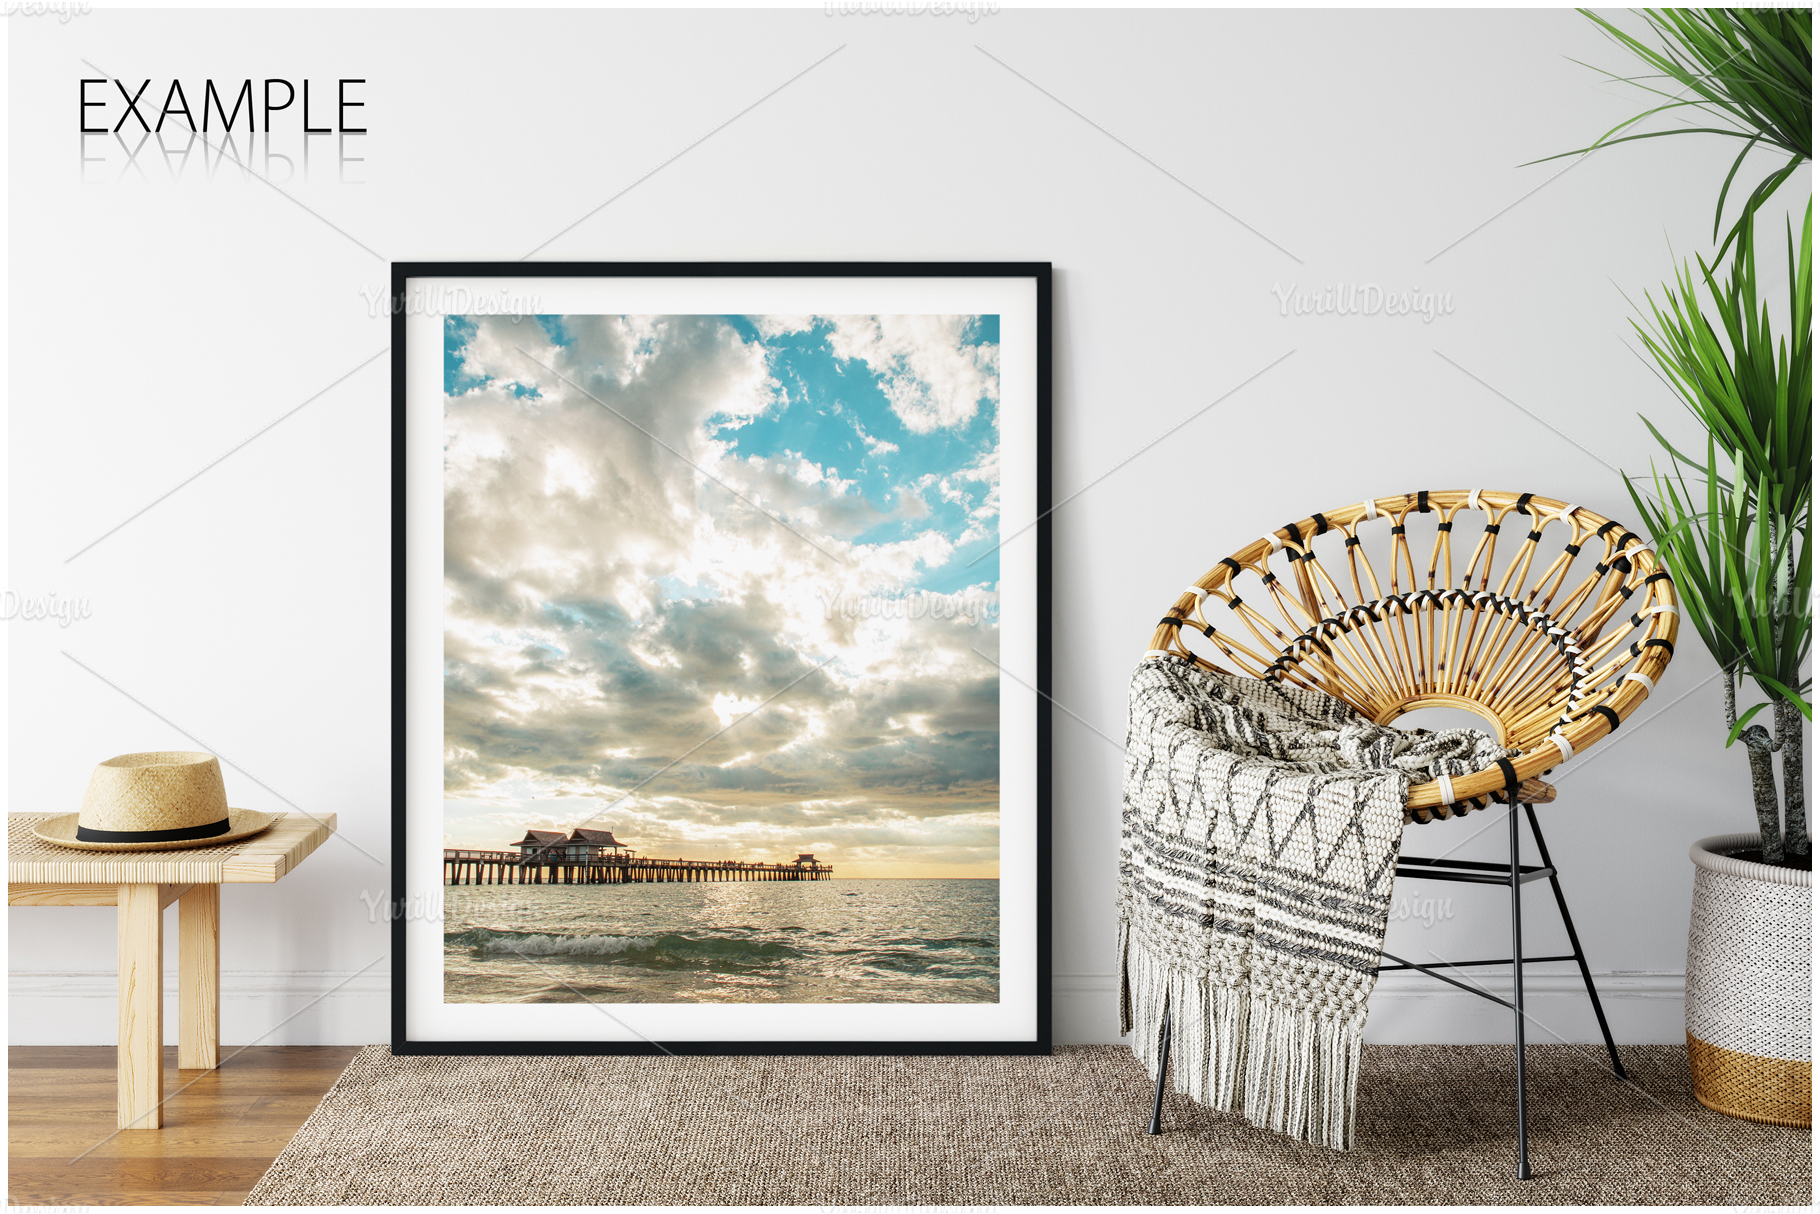 Frames & Walls Coastal Mockups Bundle example image 18